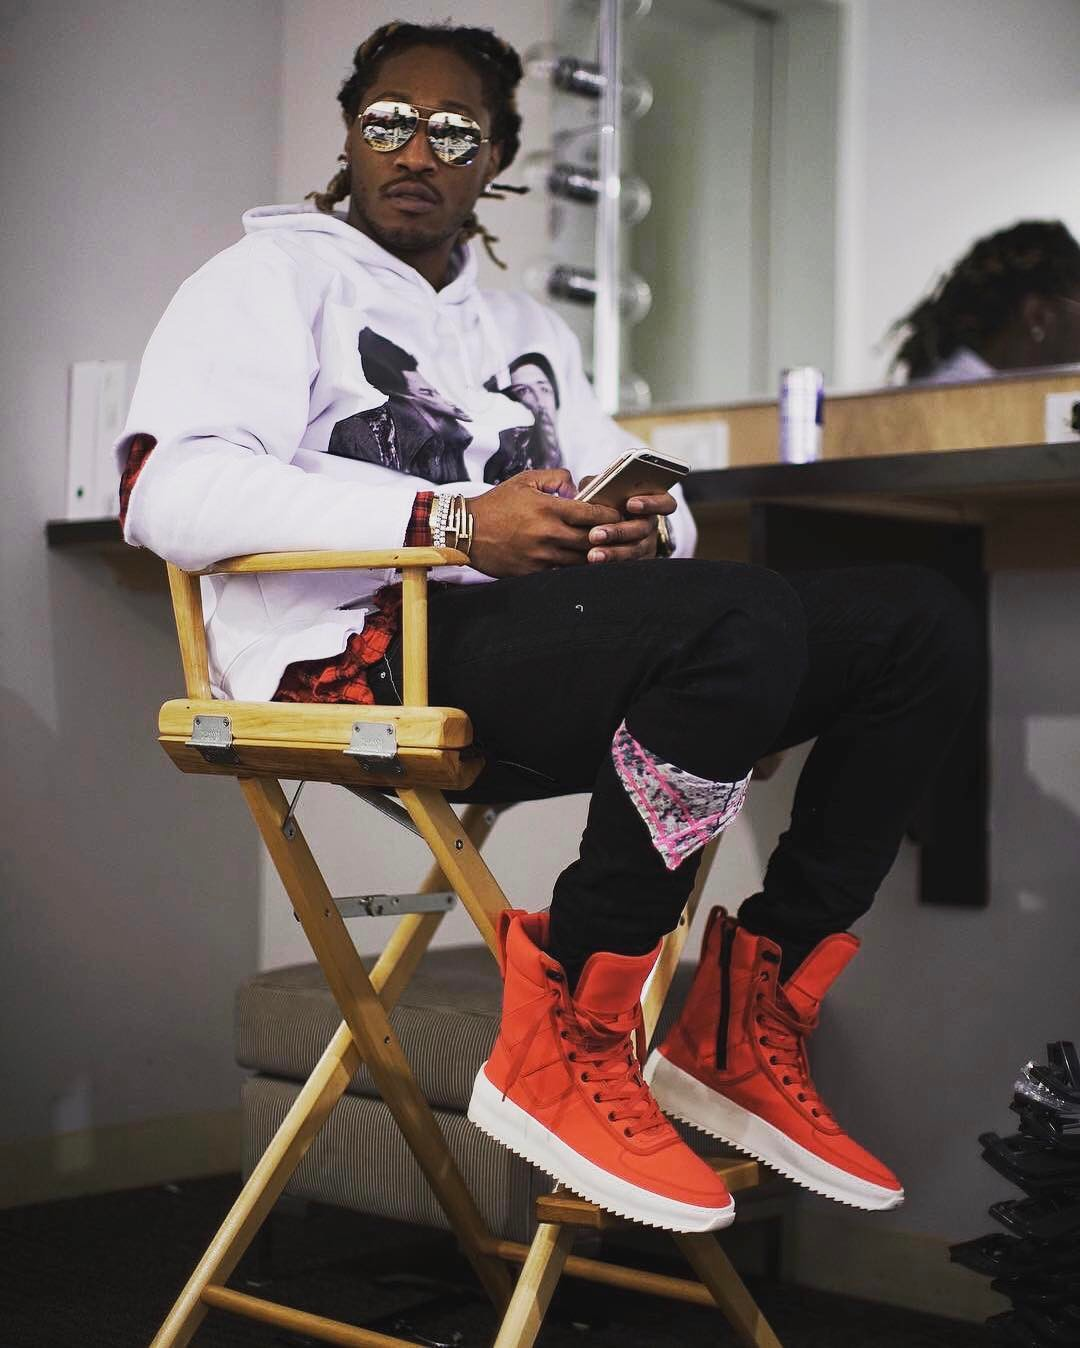 SPOTTED: Future In Ih Nom Uh Nit x HNDRXX Hoodie And 1 of 1 Fear Of God Infrared Sneakers